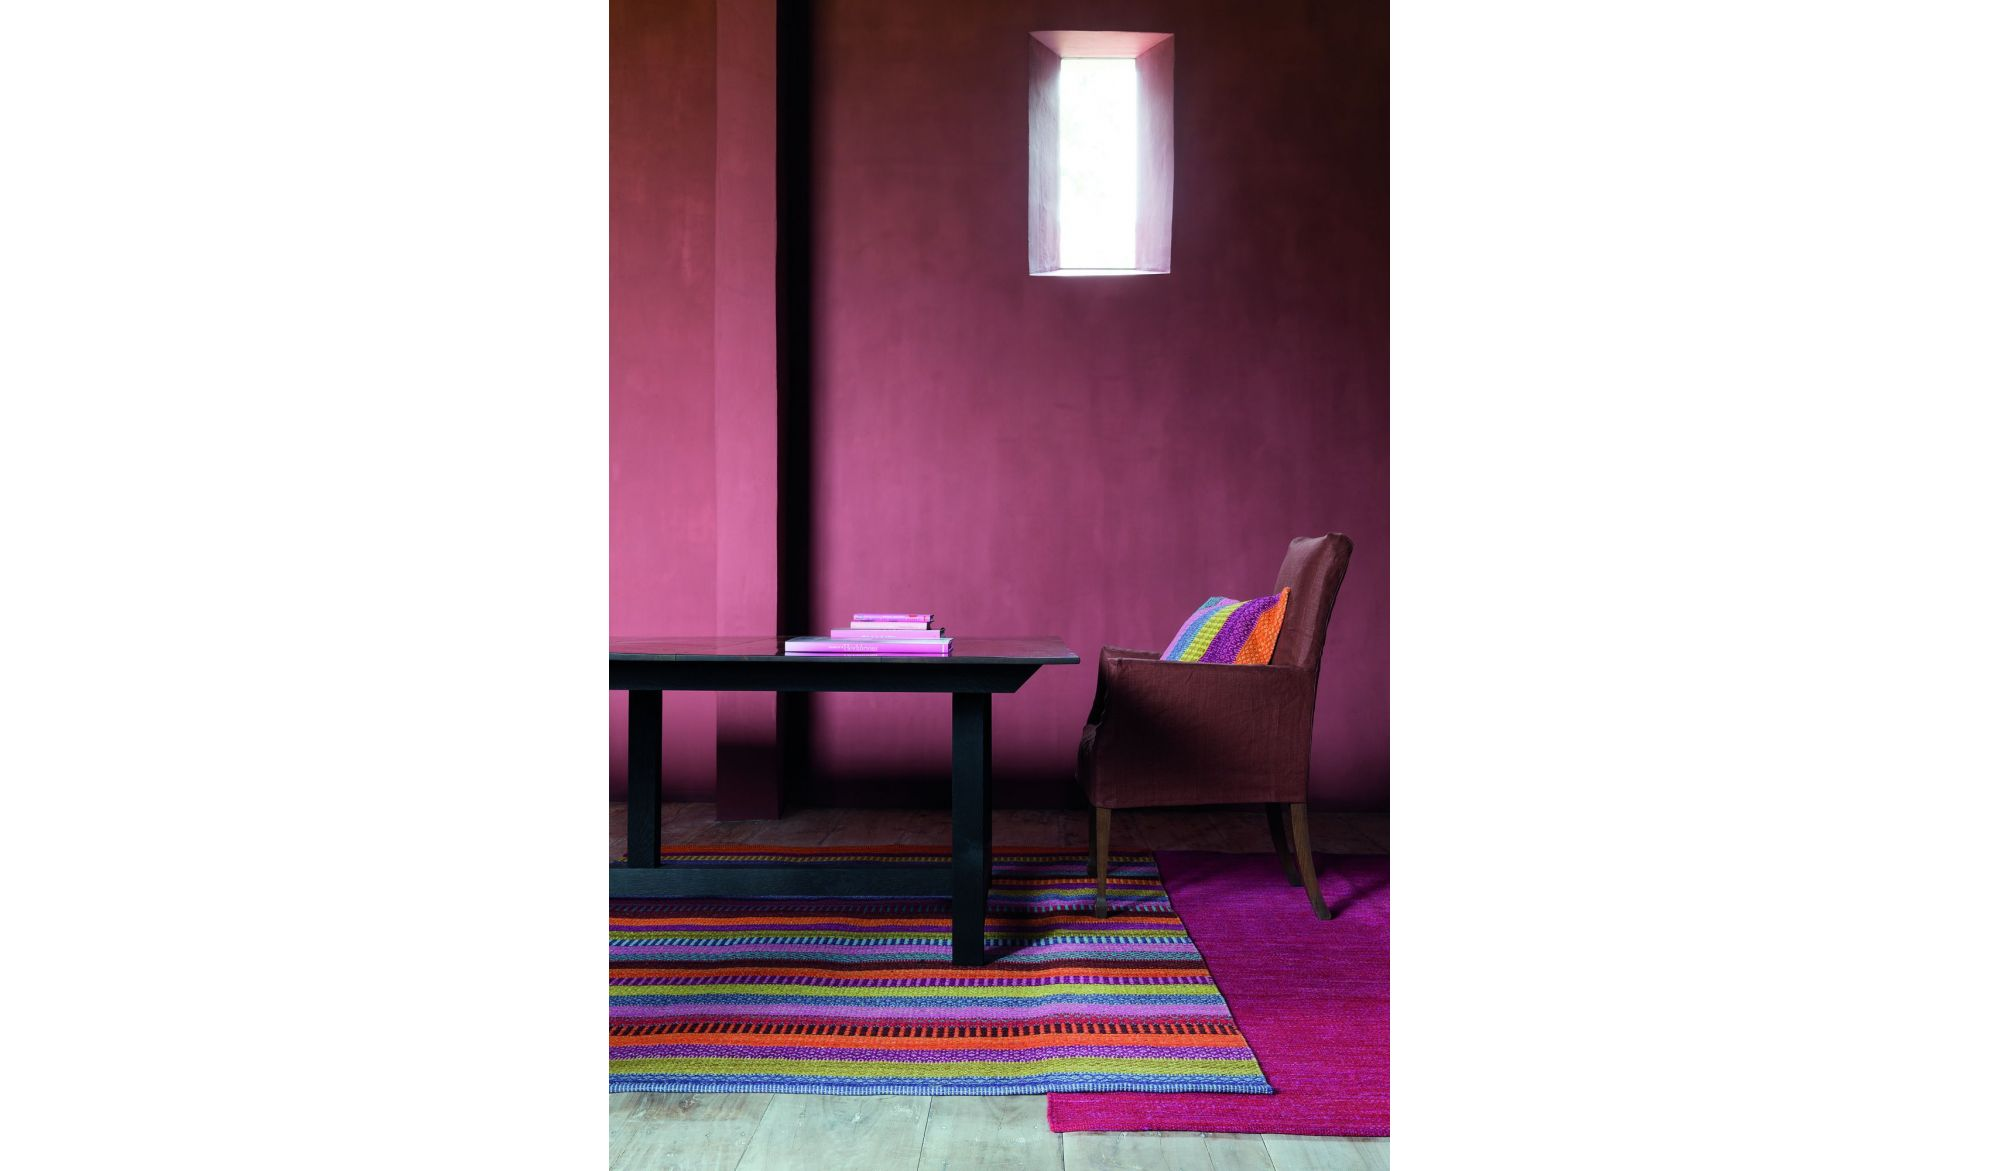 DYWAN 216.002 300 Size 200X300 - Carpet alt_dywany_kolor_300 size 200x300 Checked - Visualisation